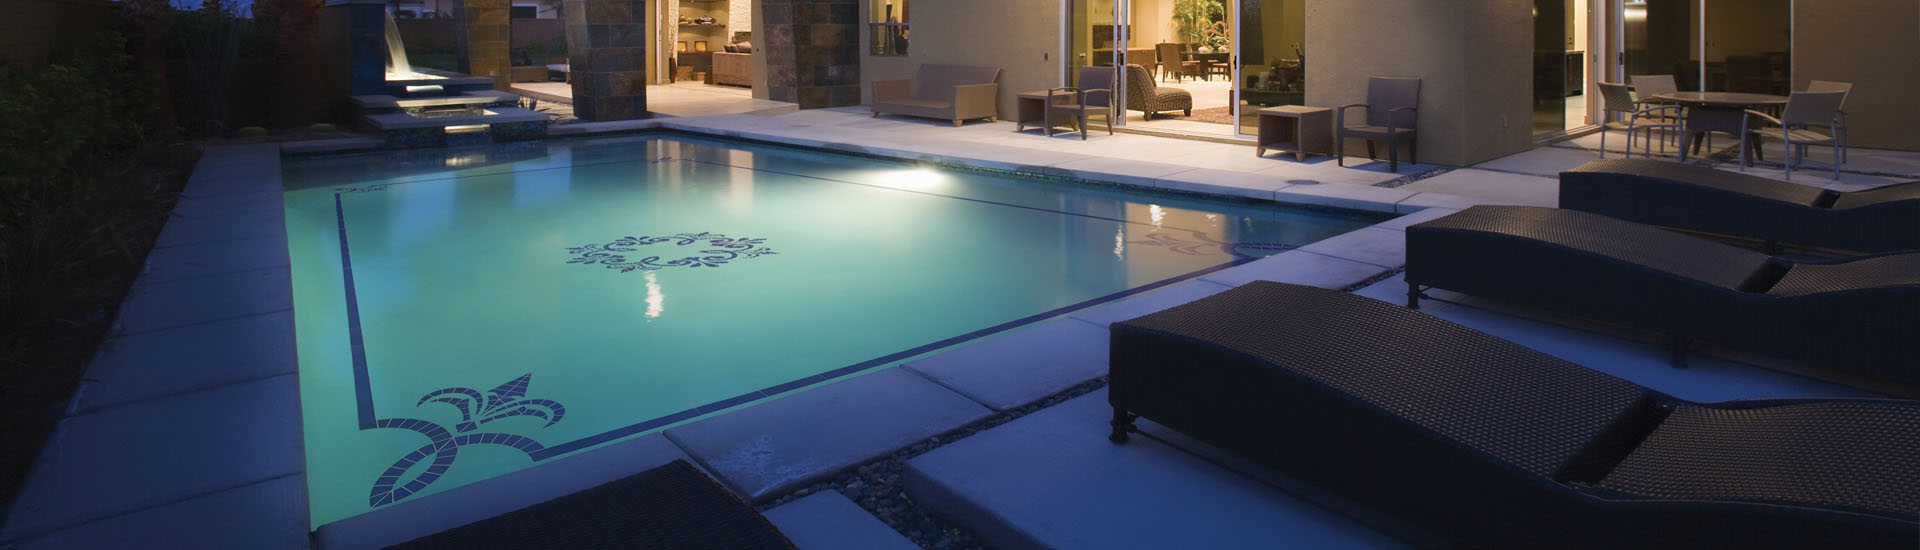 Artistry In Mosaics - Distinctive Tile Designs for Your Pool and Home